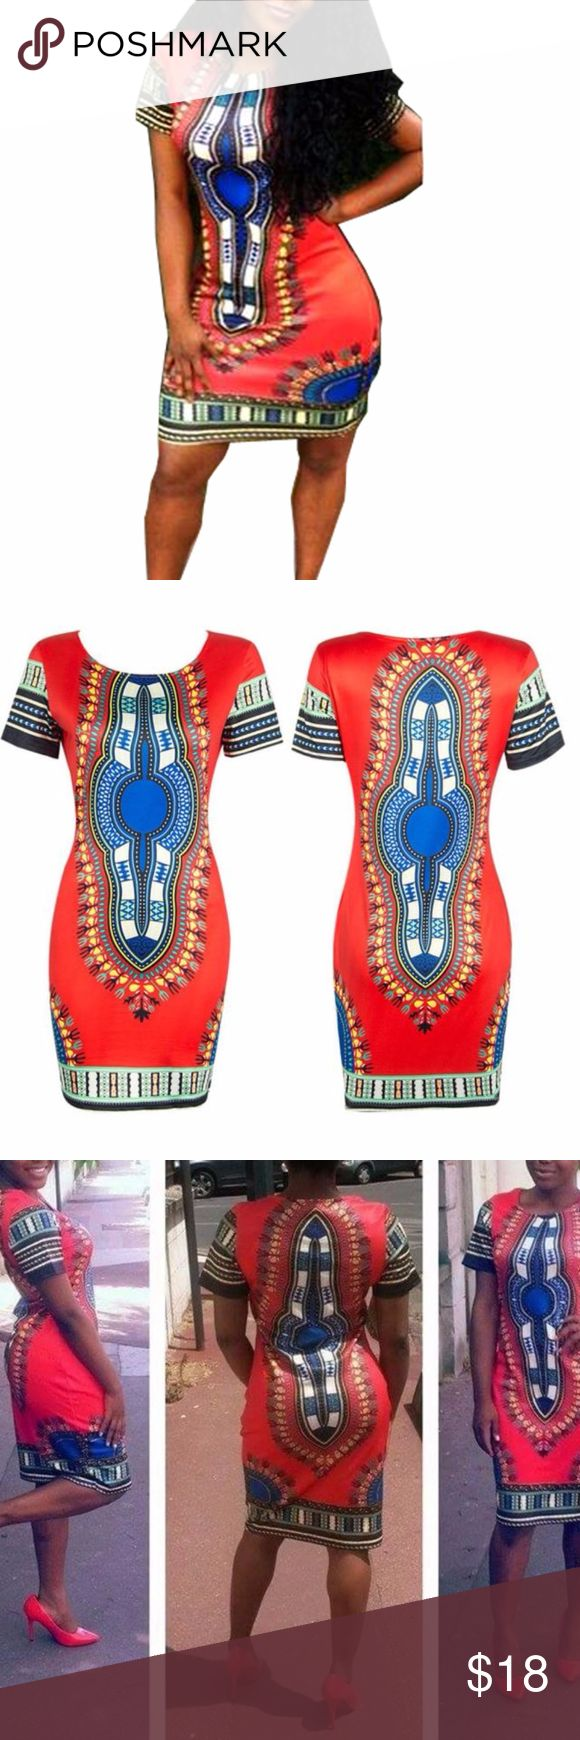 AFRICAN DASHIKI DRESS, RED BUST 37 INCHES WAIST 34 INCHES HIP: 40 INCHES Dresses Mini